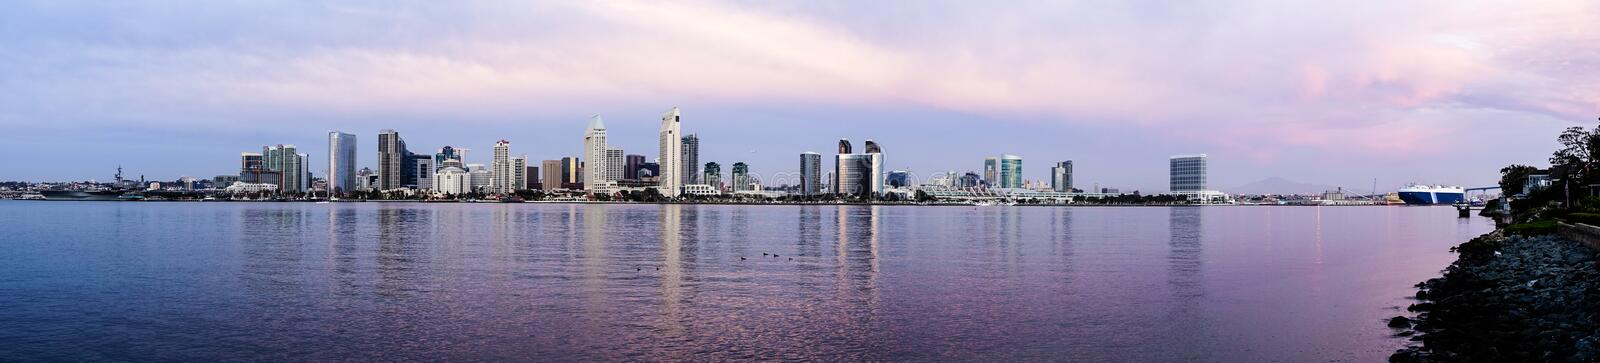 Long Panoramic View San Diego Waterfront Downtown City Skyline. View from Coronado Island of the bay and buildings of San Diego at dusk royalty free stock photo